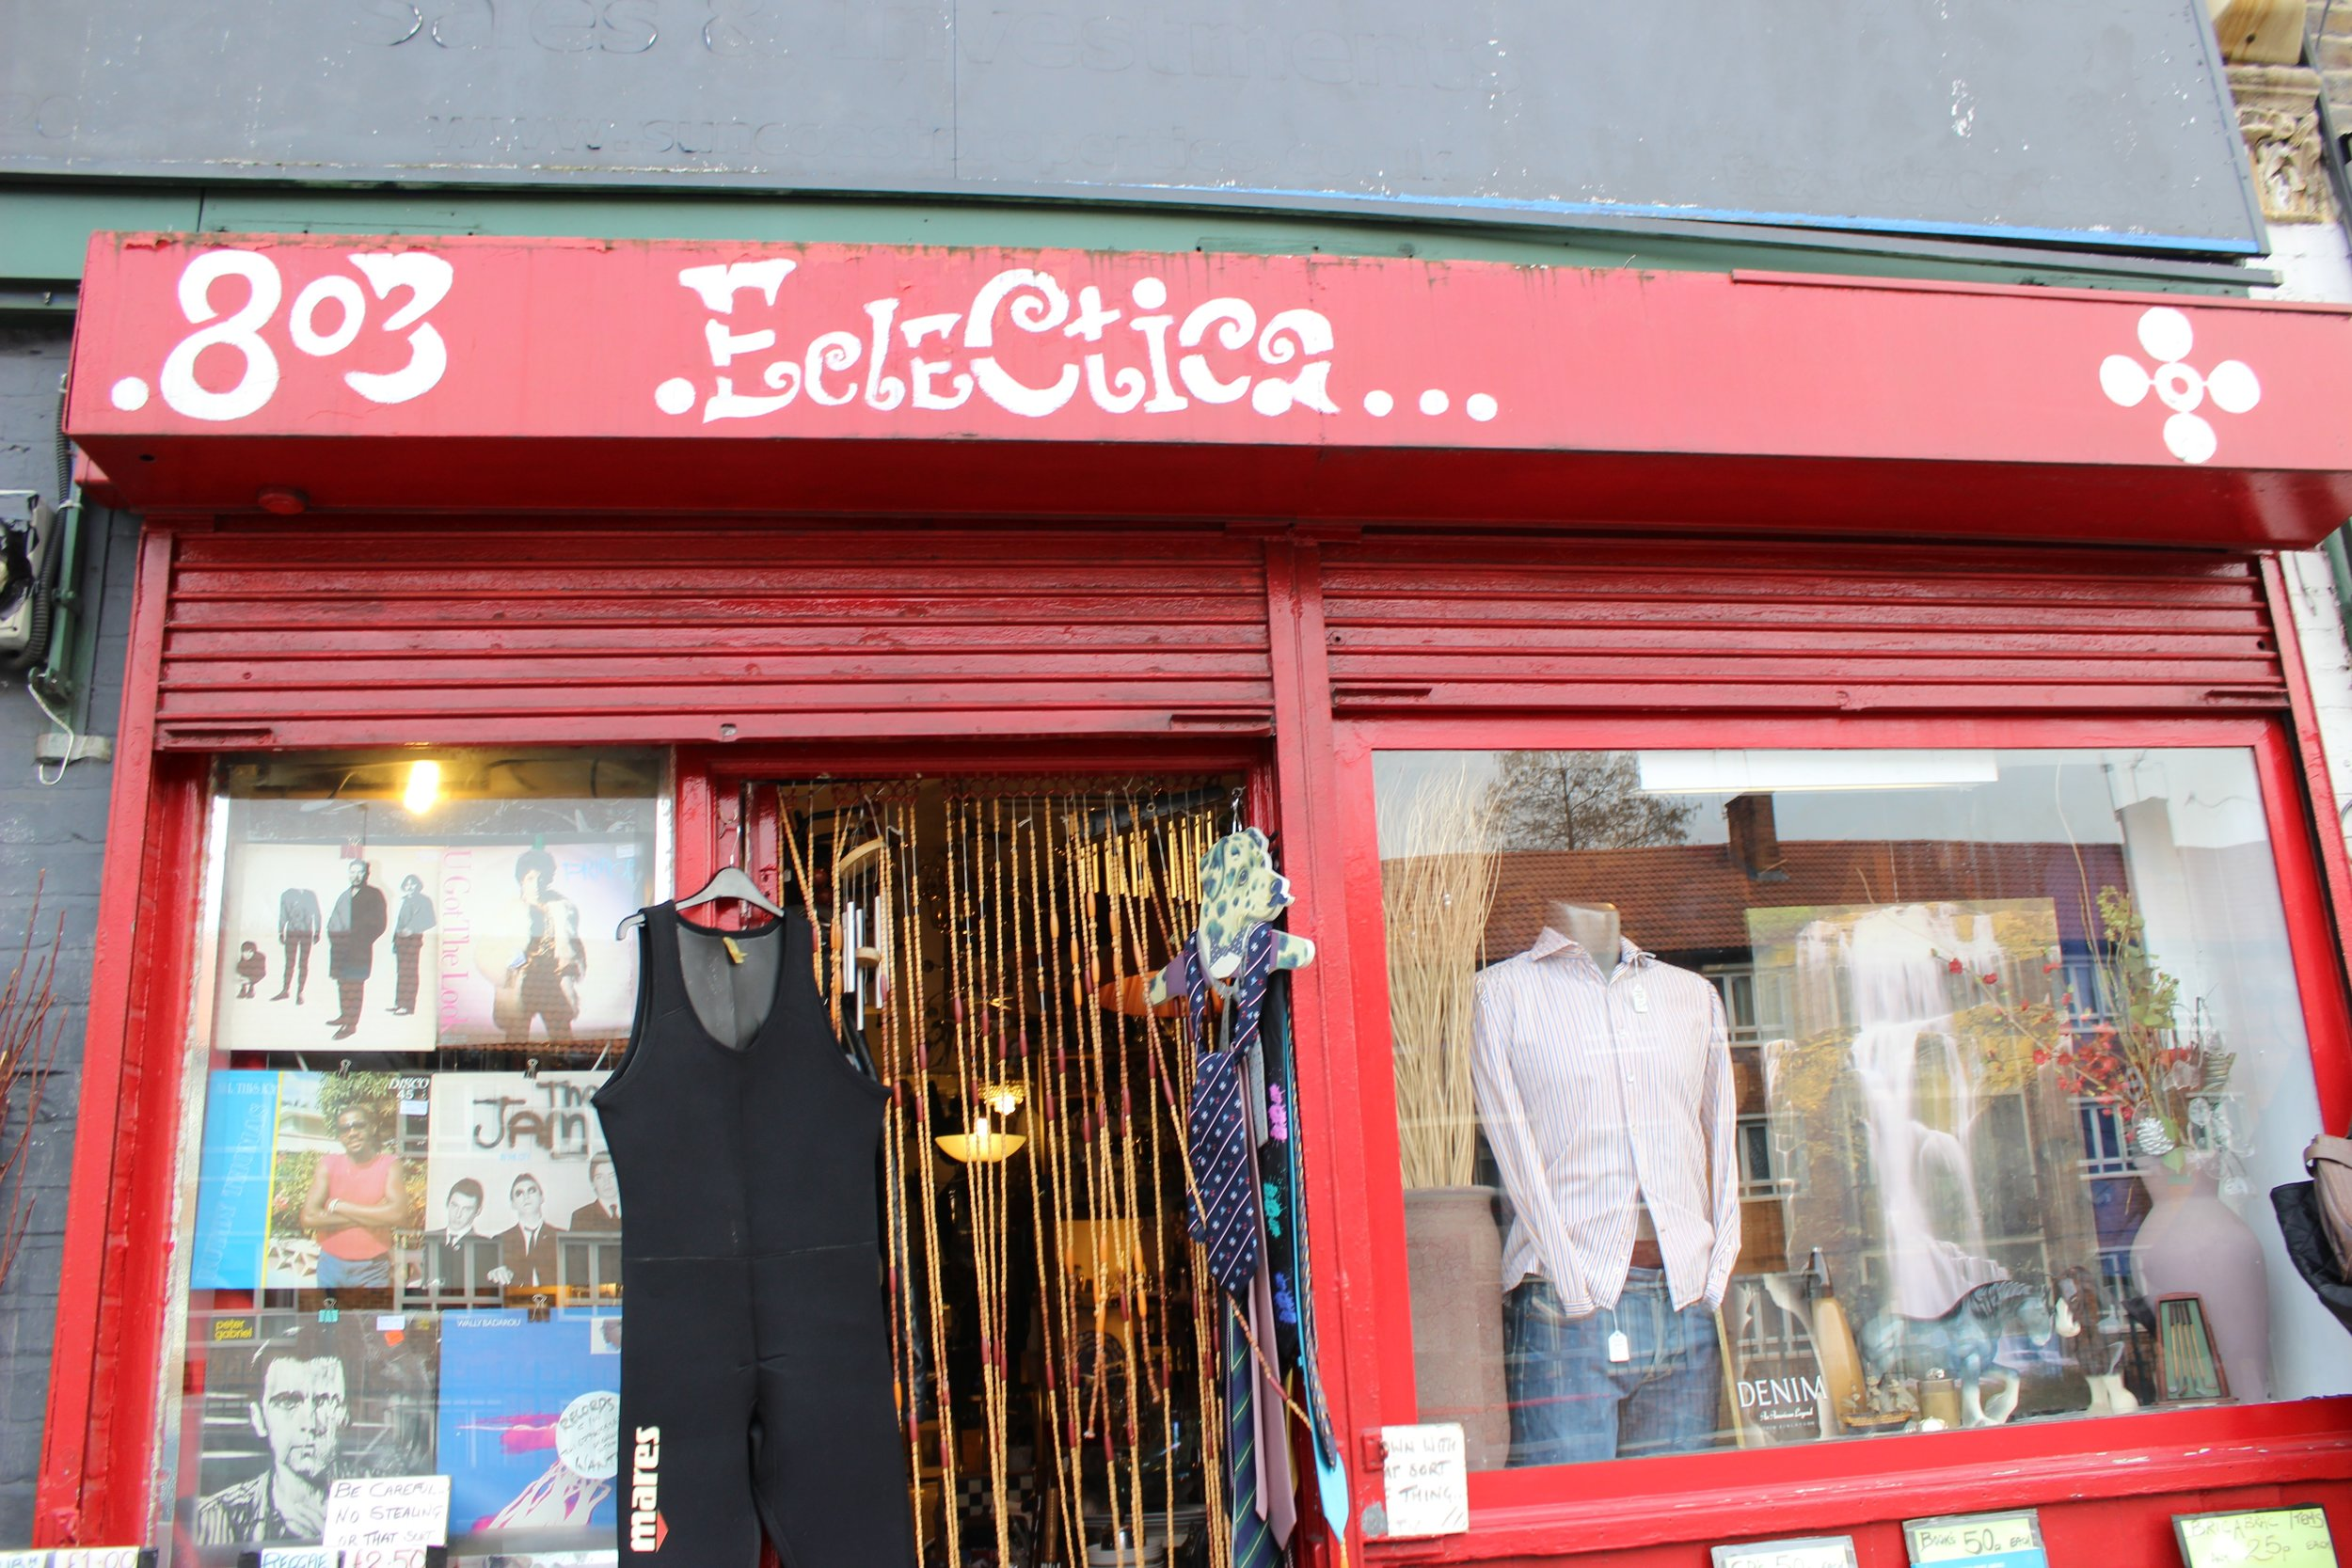 Ecelctica Bric a brac records collectibles and antiques shop in battersea South West Lonodn Club Card 8.jpg